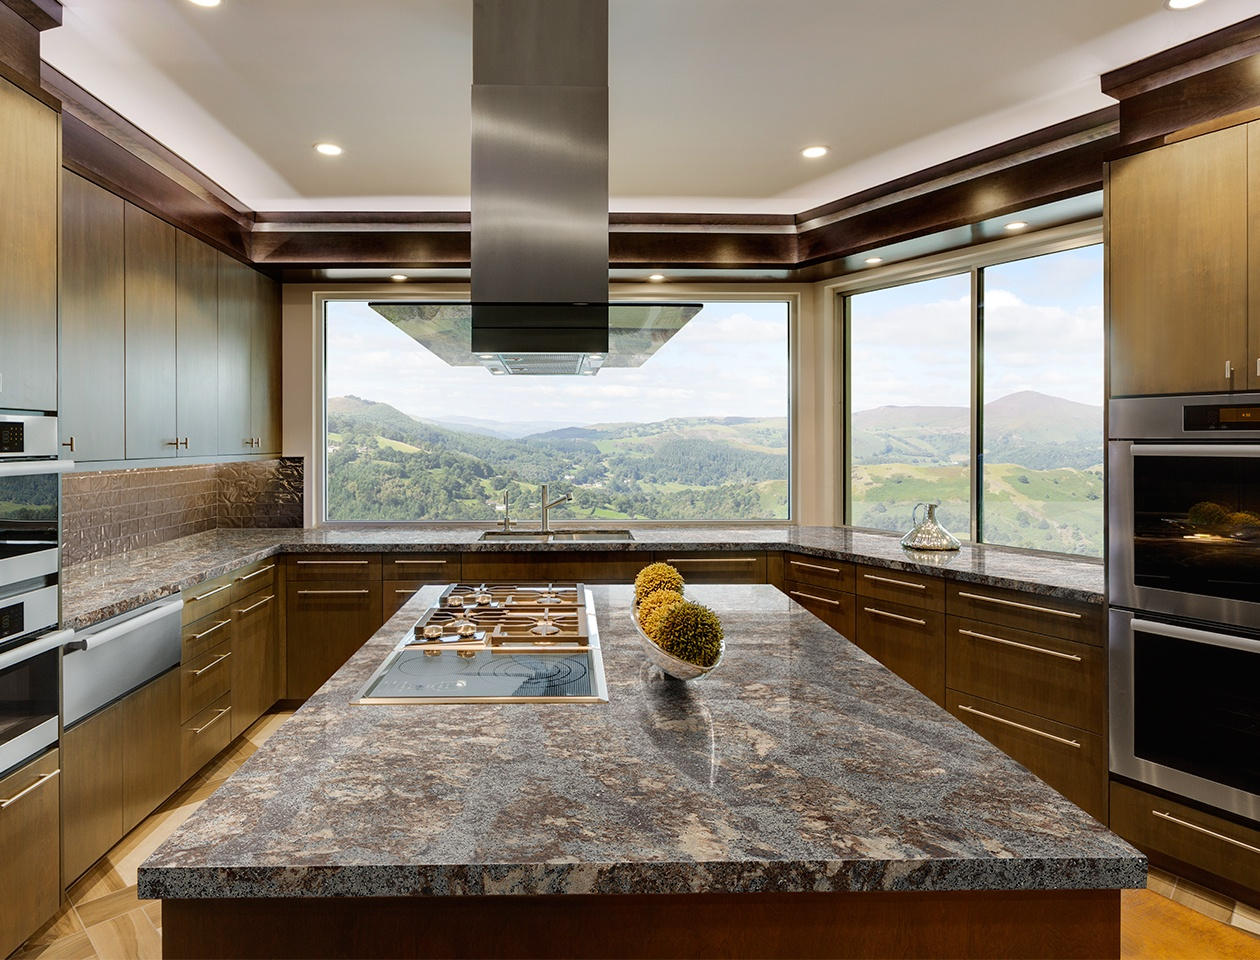 Reface Kitchen Cabinets Before After How Are Quartz Countertops Made